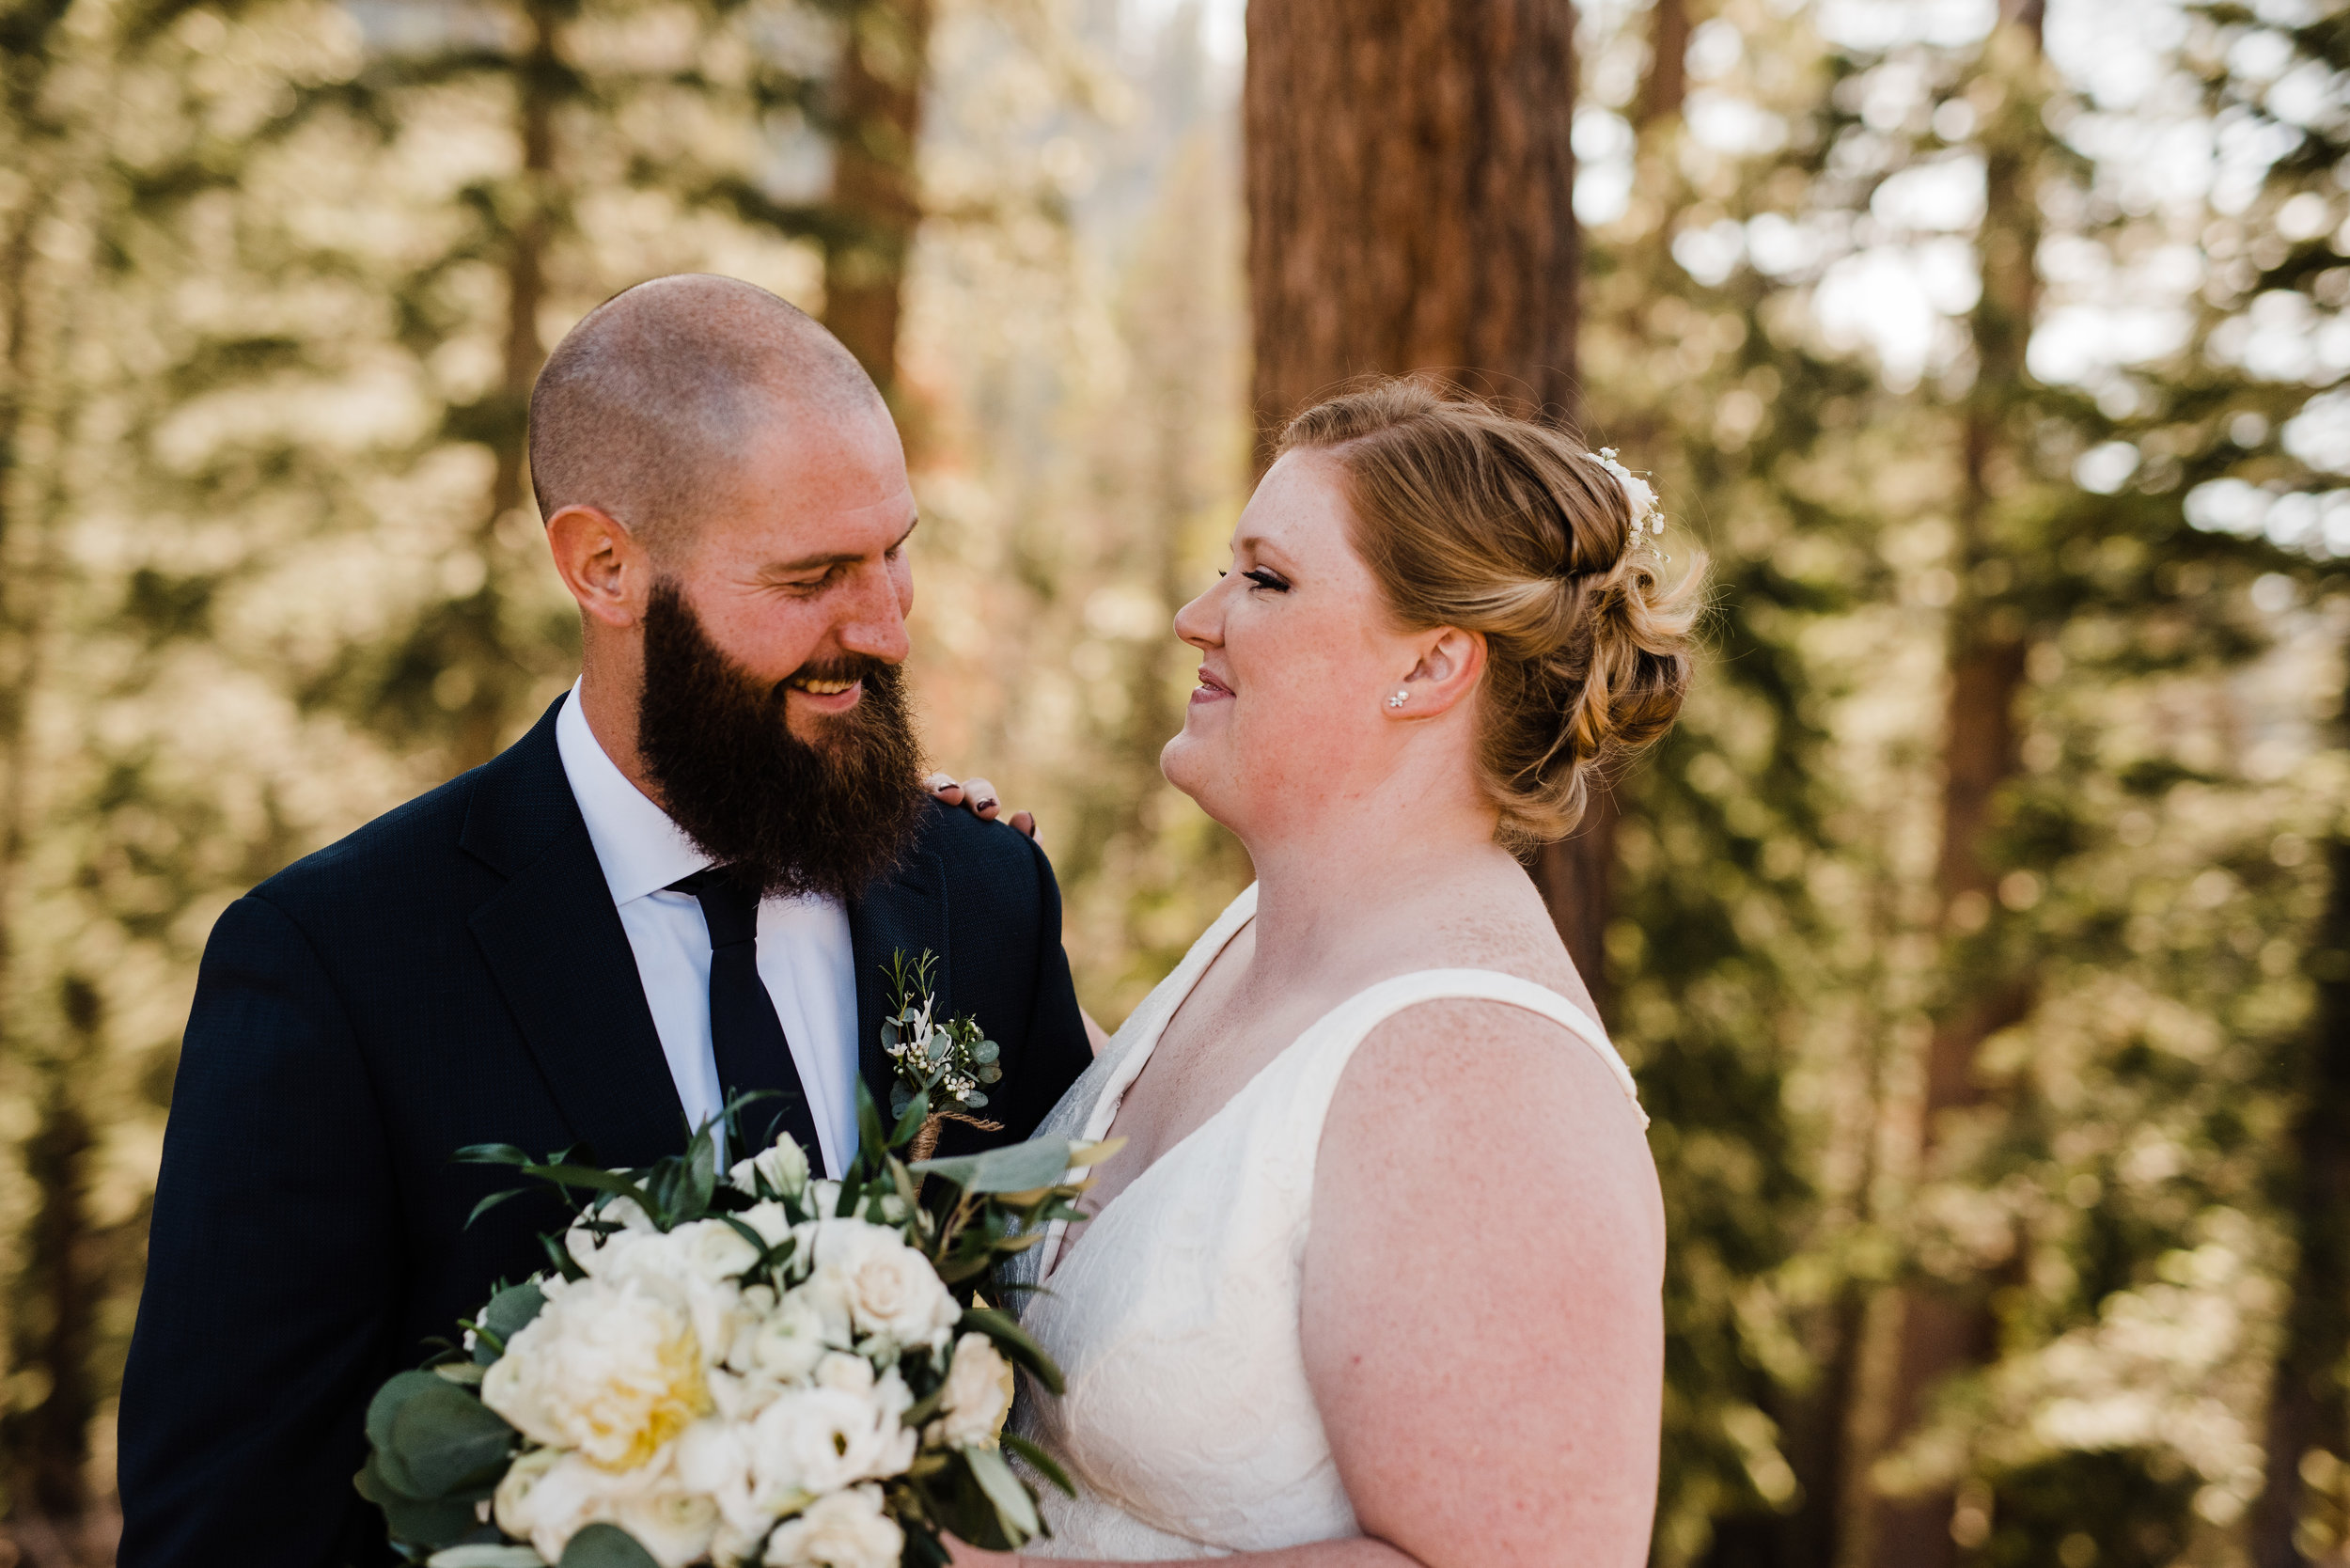 Summer Bride and Groom at Yosemite National Park with Classic, Romantic Color Scheme